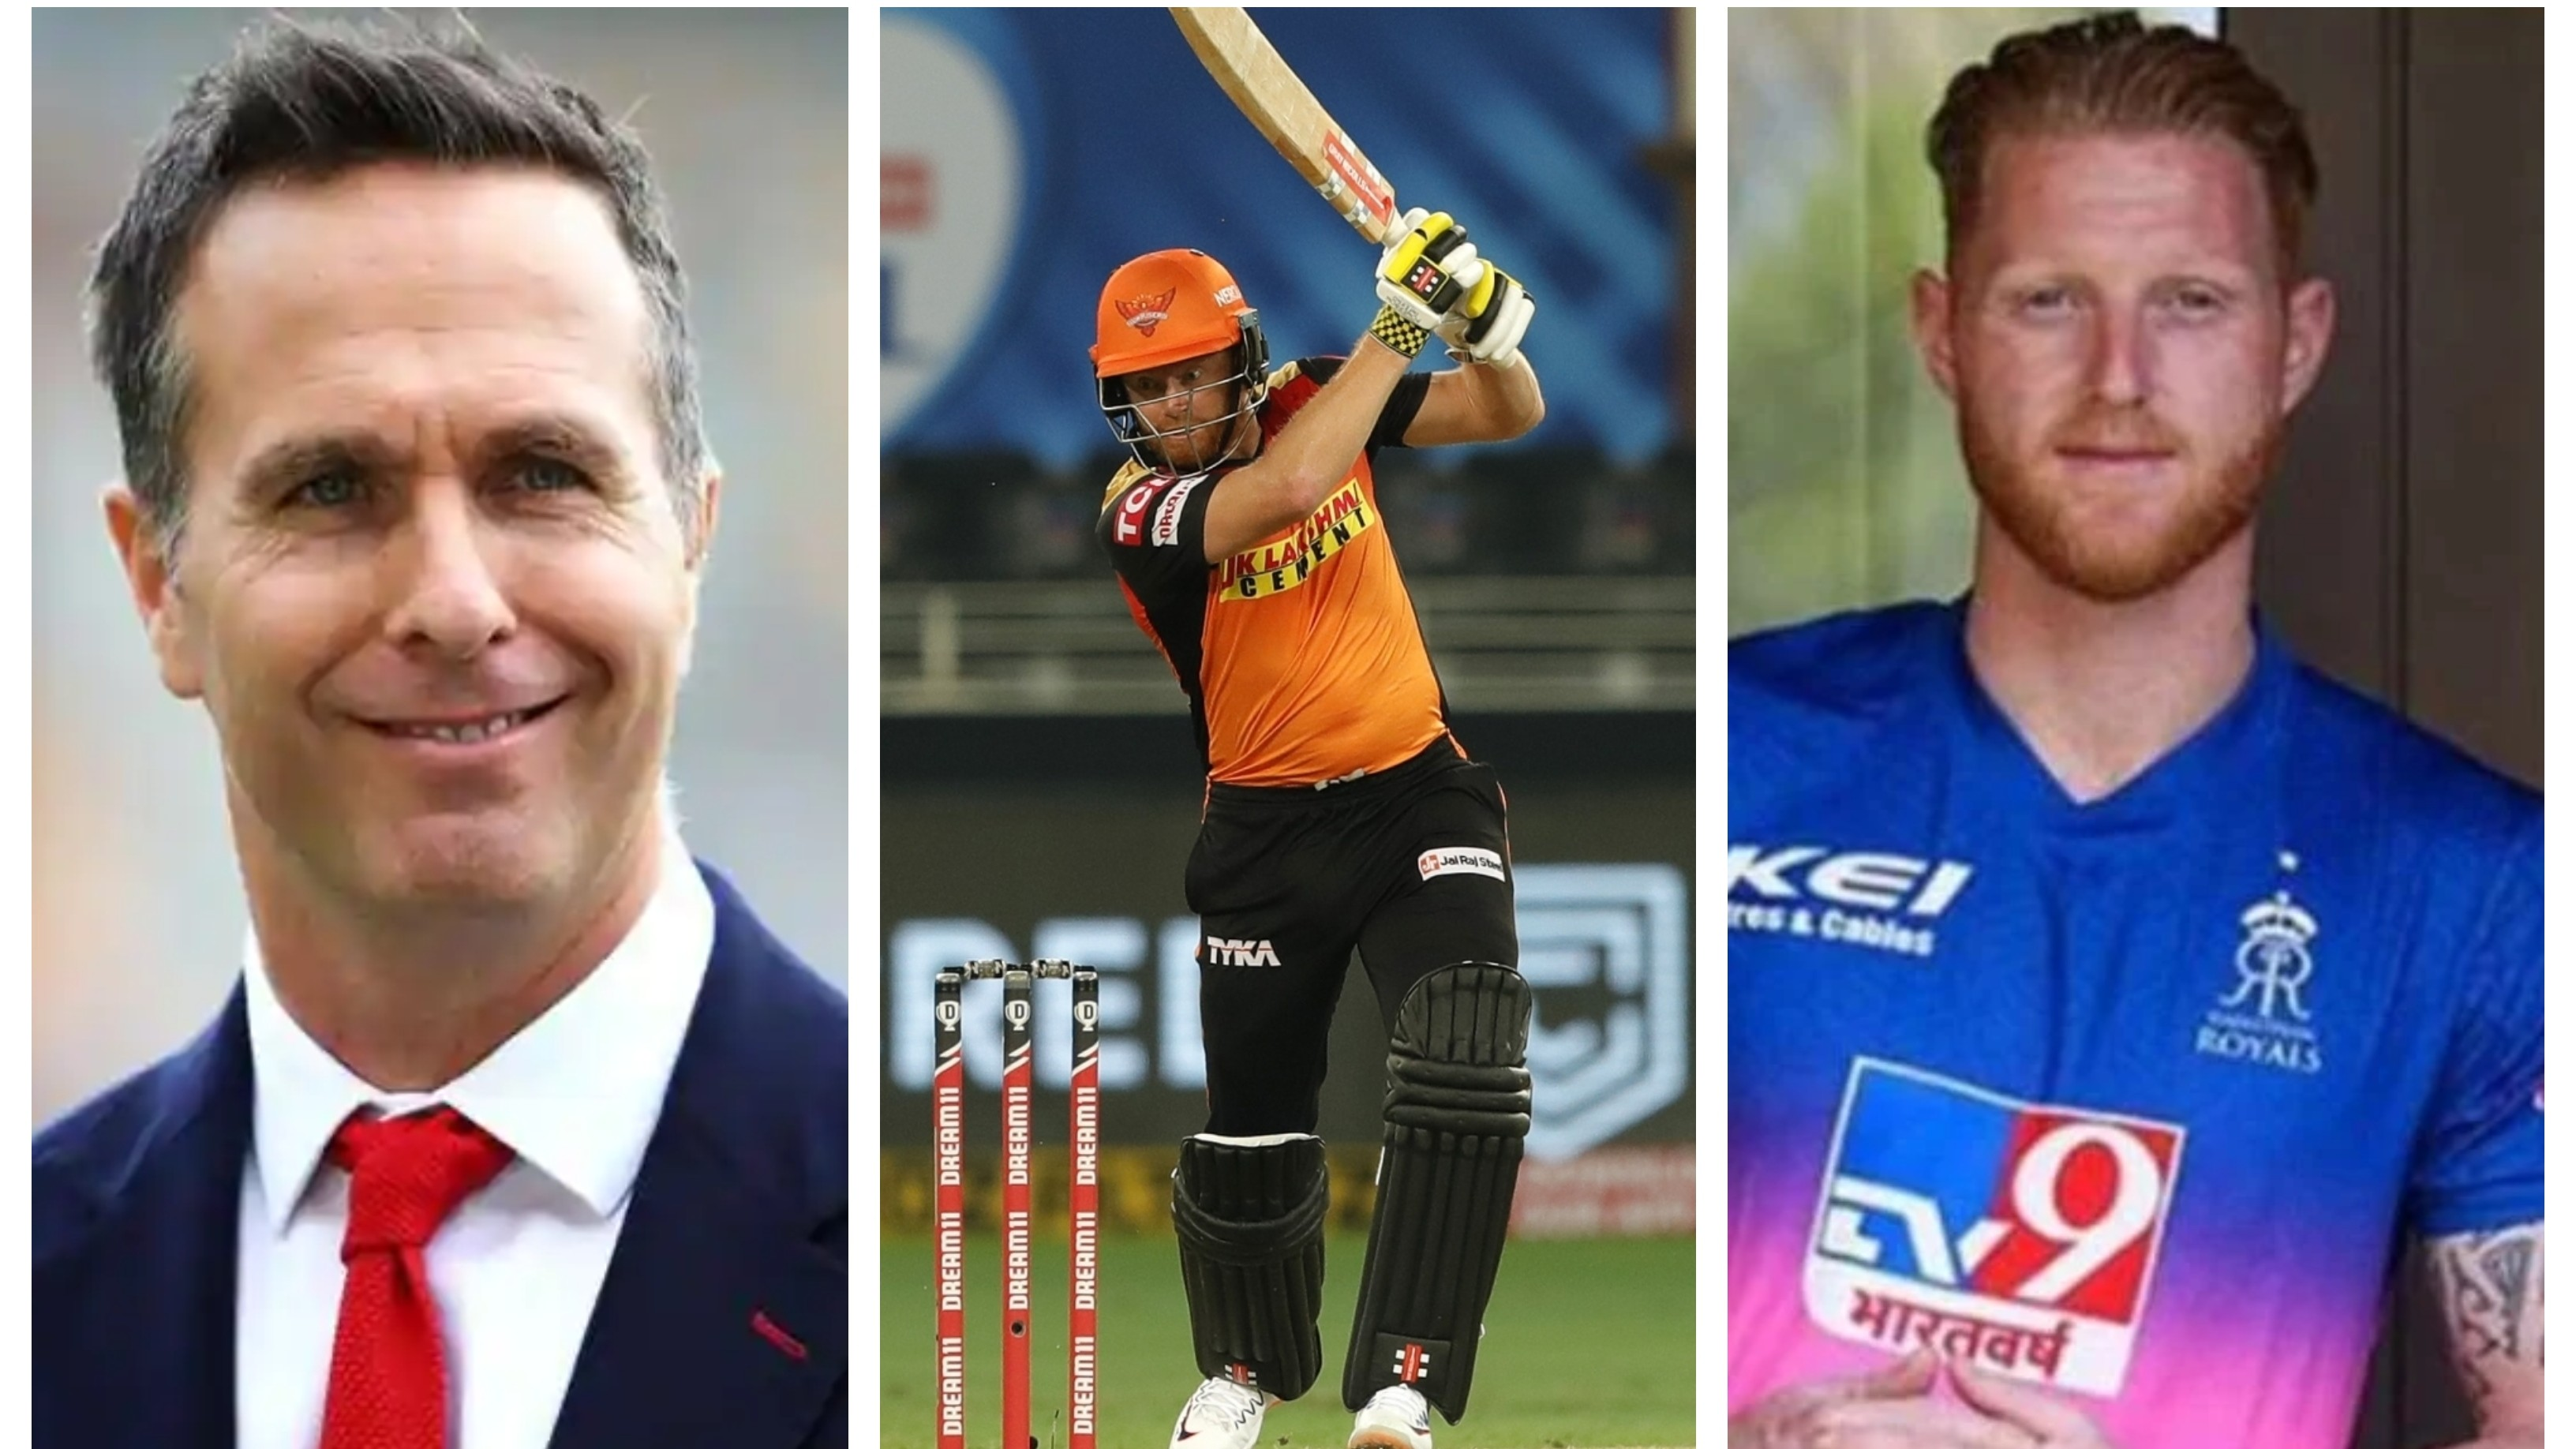 IPL 2020: Cricket fraternity reacts as Bairstow slams 55-ball 97 to take SRH to 201/6 against KXIP